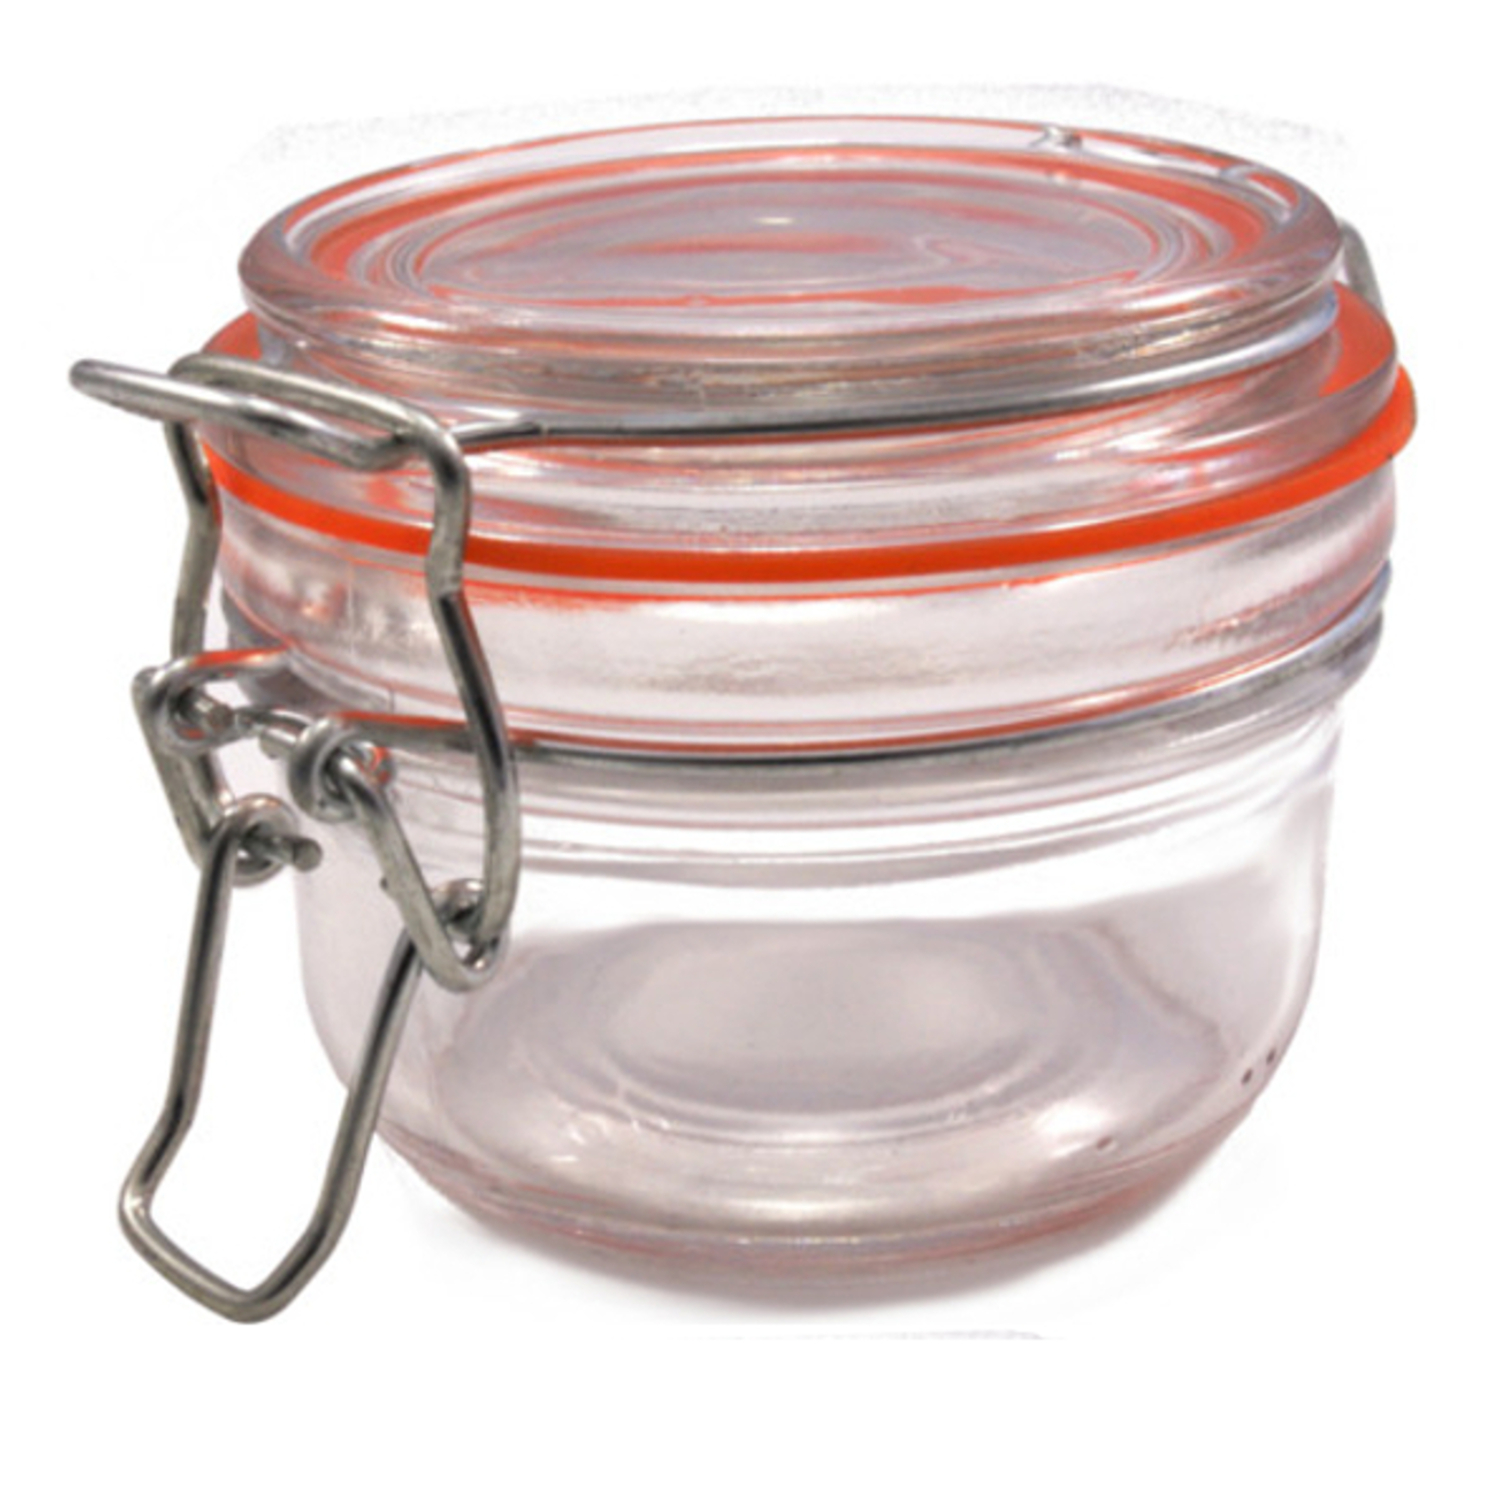 Chef-Hub 125ml Clip Top Terrine Storage Jar With Airtight Lid